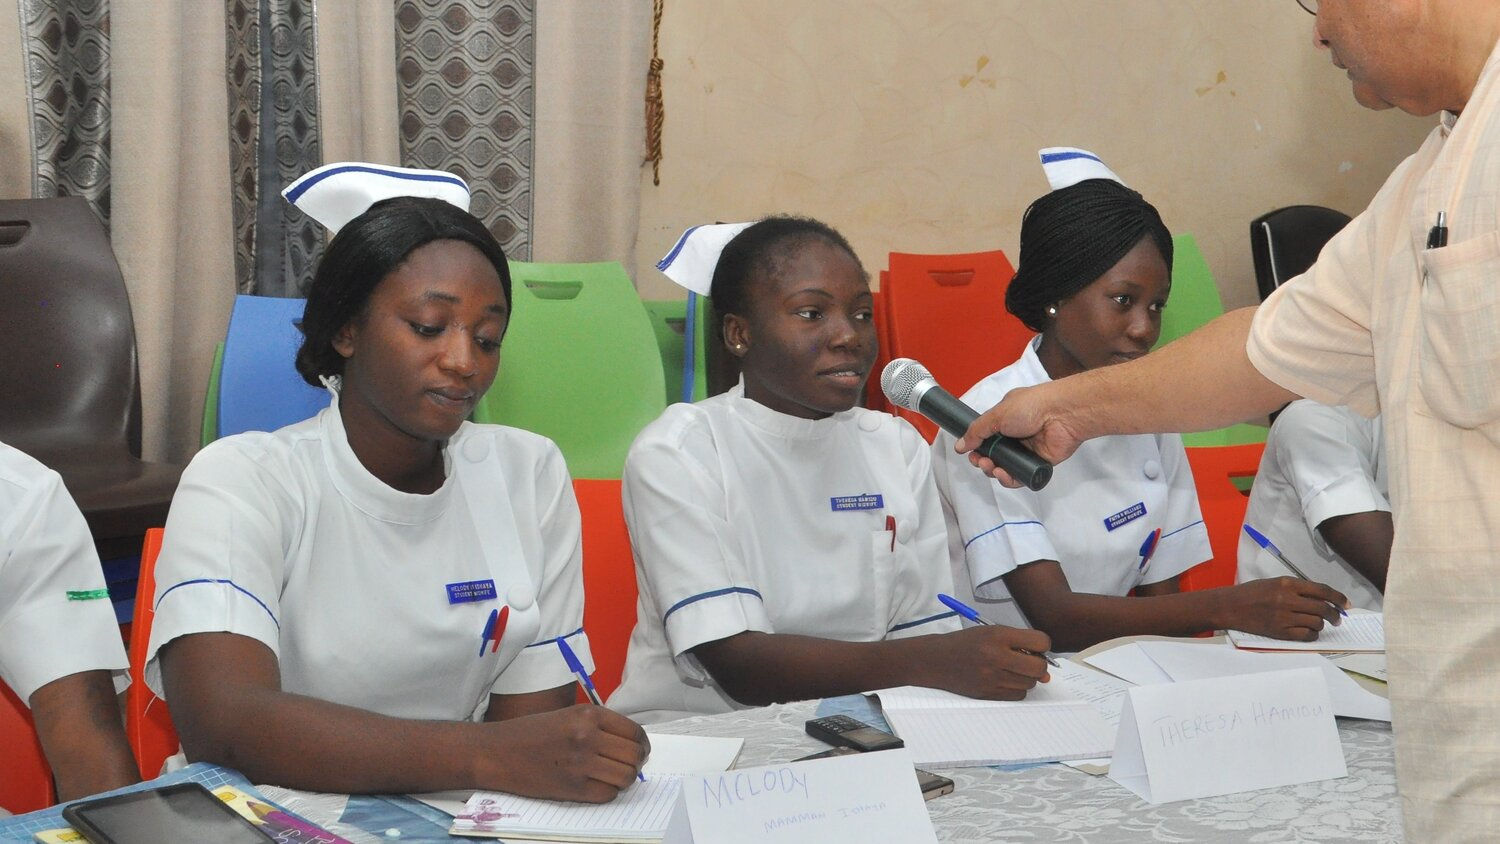 Students from the College of Nursing in Gombe received OMNIA training in October 2019